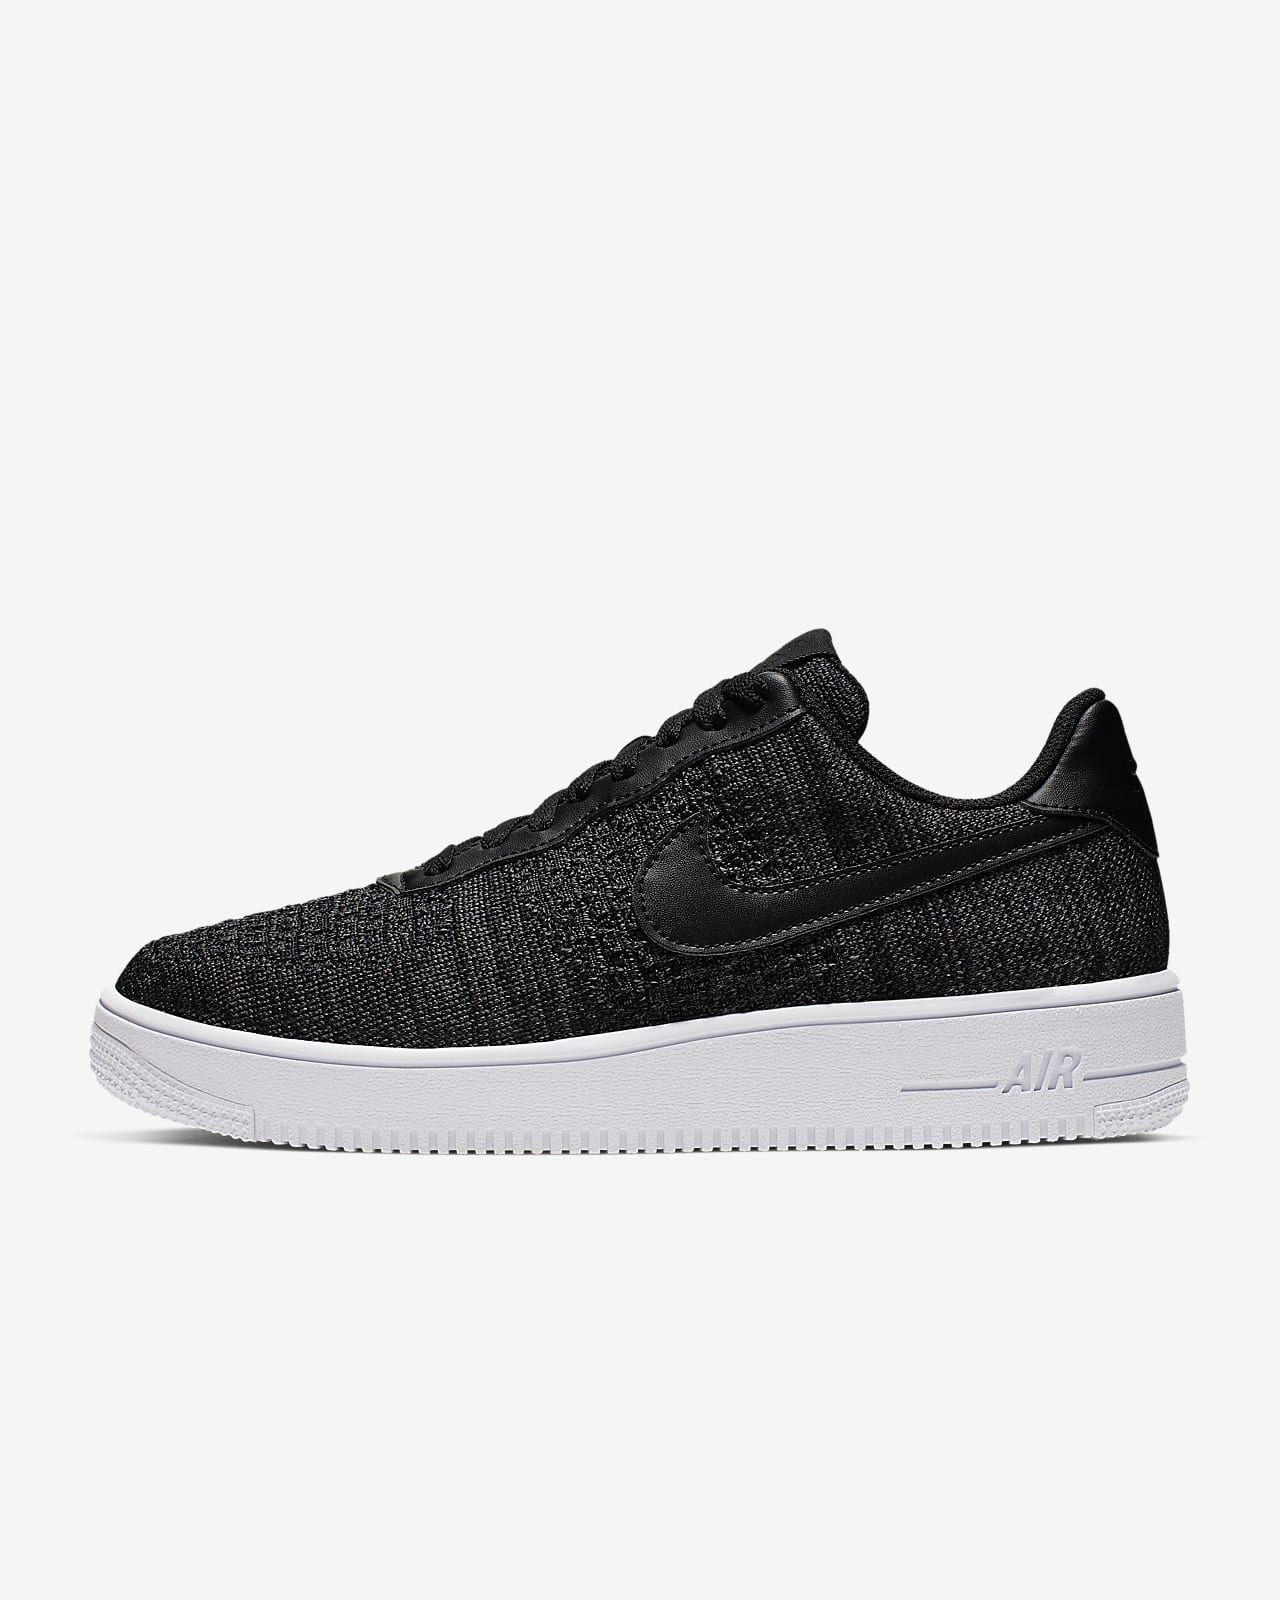 Nike Air Force 1 Flyknit 2.0 Men's Shoe